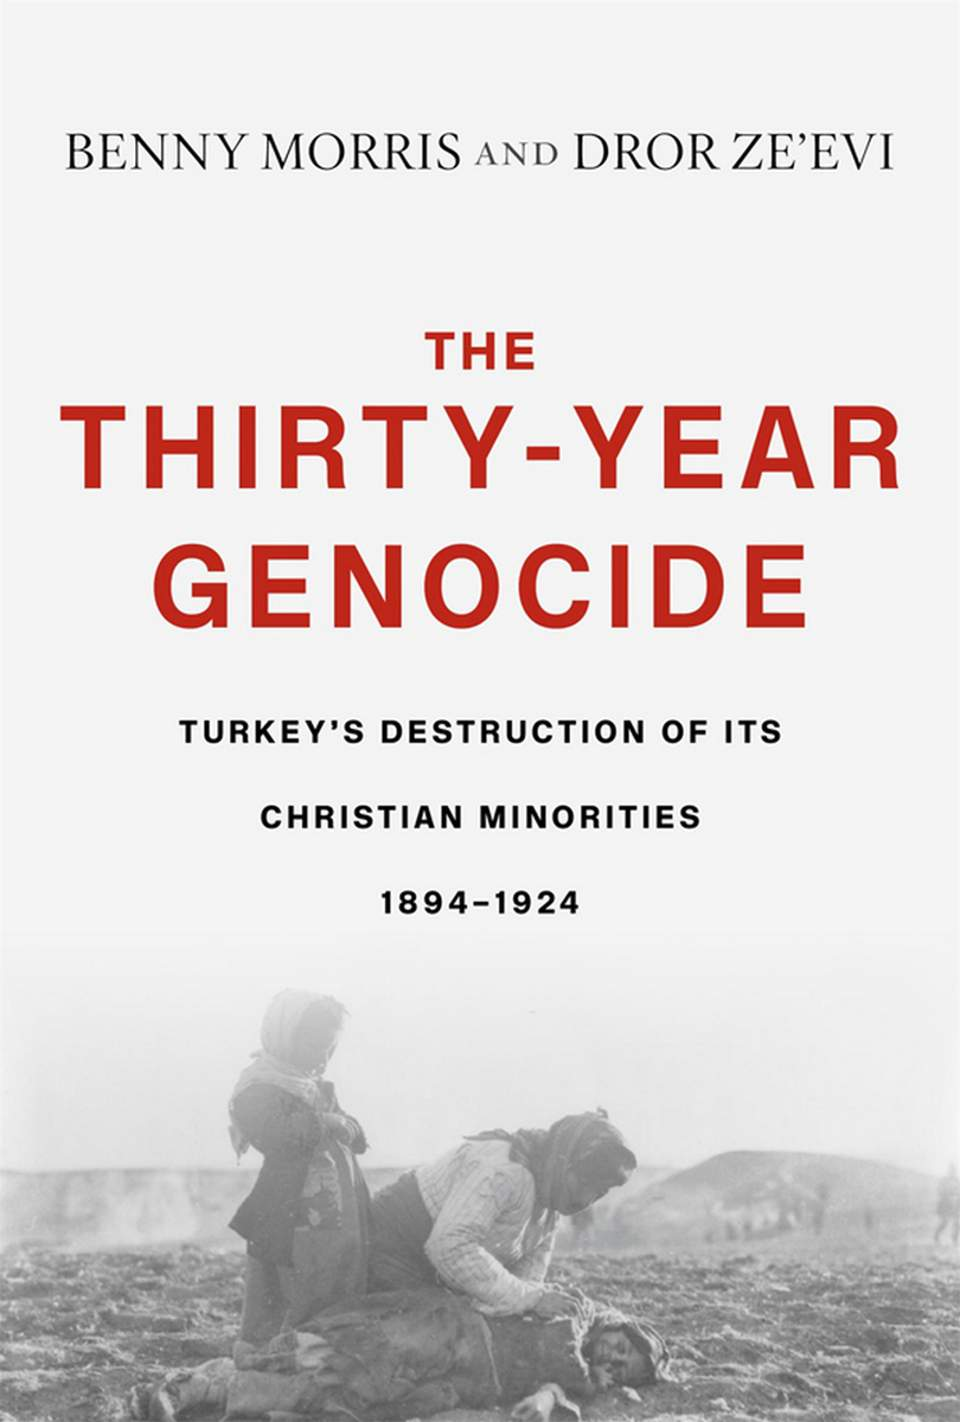 genocide-book-thumb-large.jpg